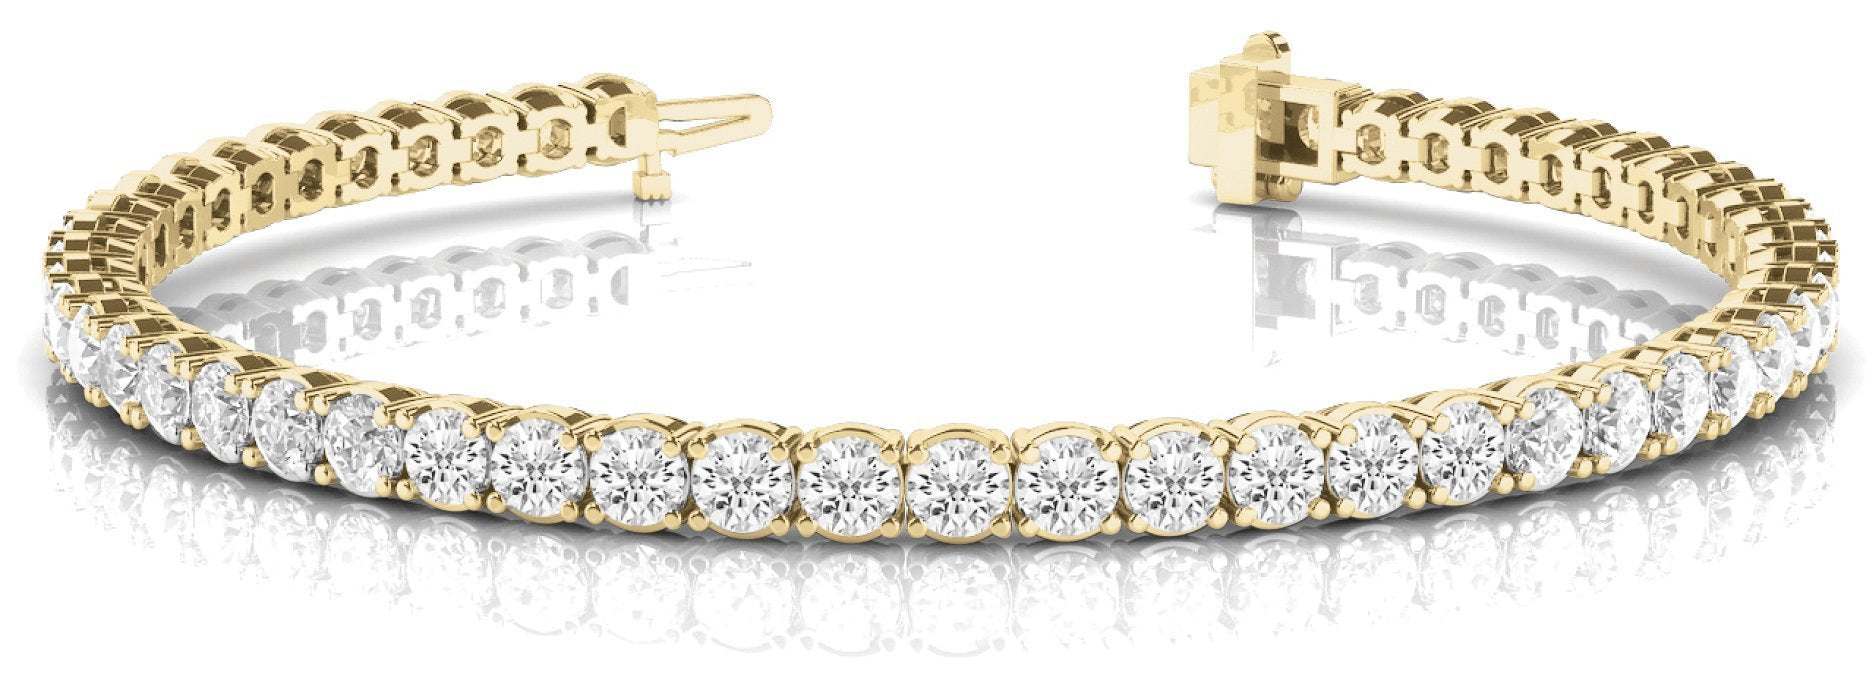 Line Diamond Bracelet 6.48ct tw Ladies - 14kt Yellow Gold